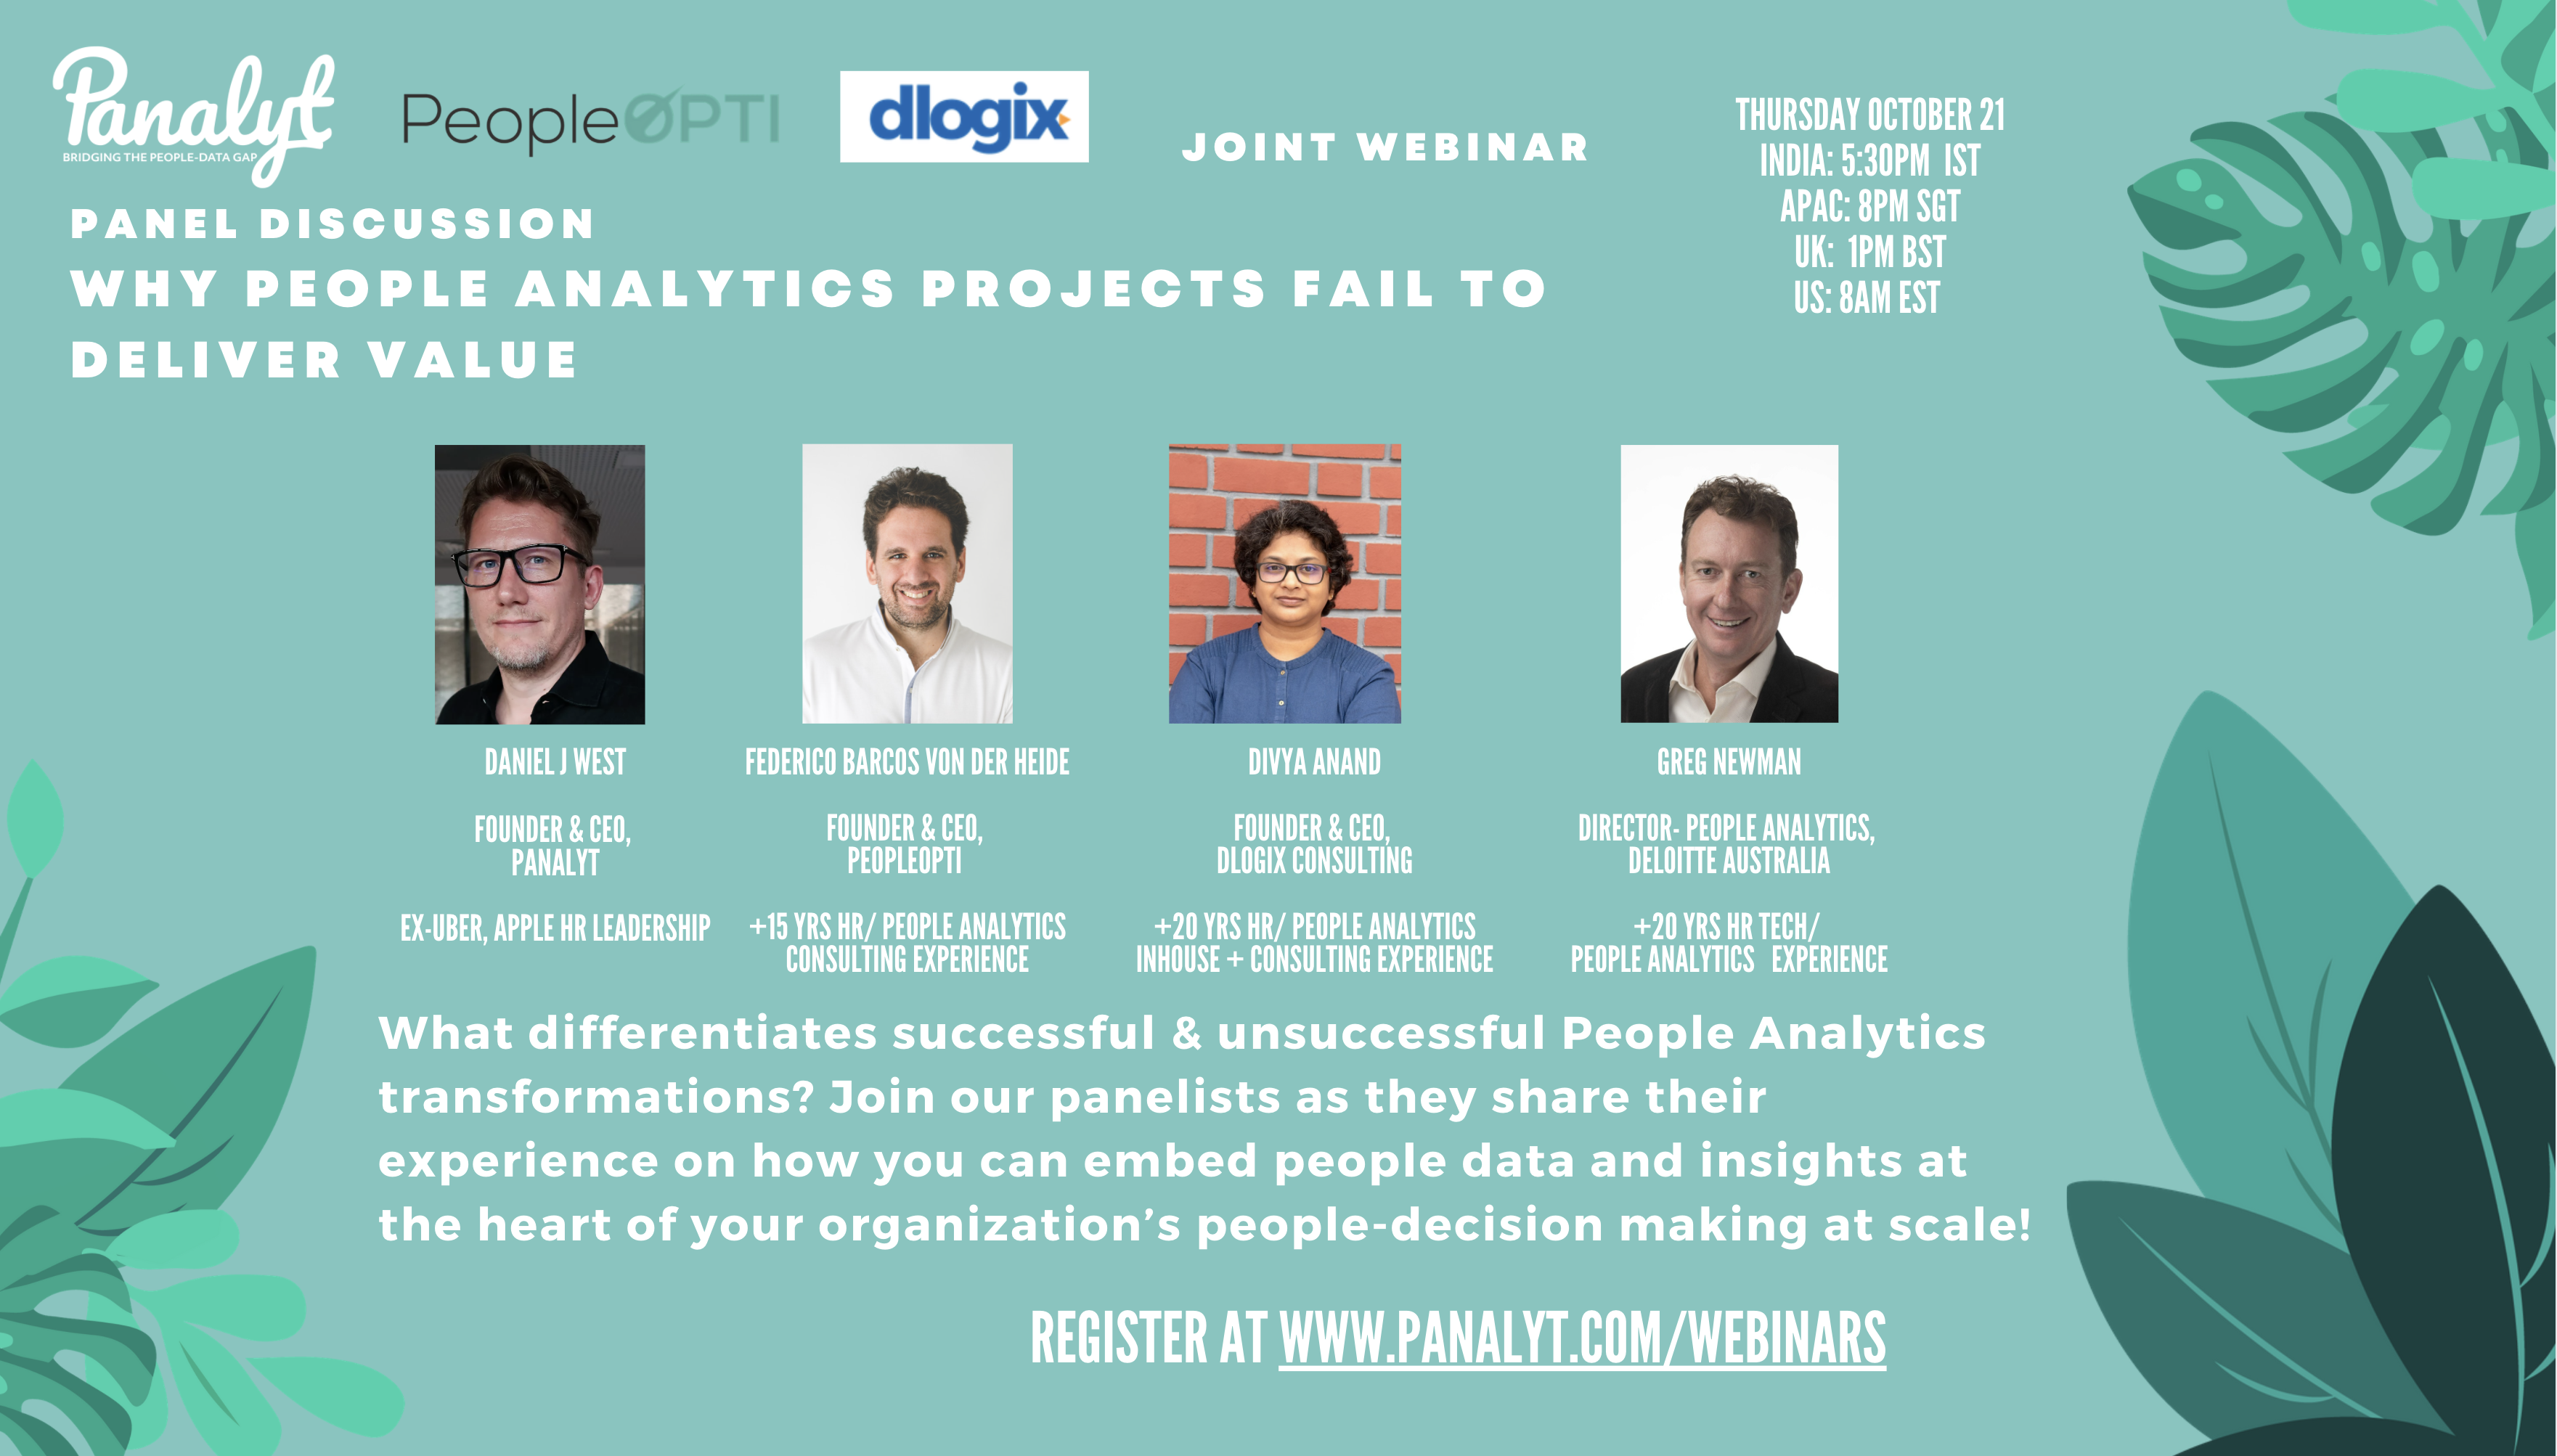 Why People Analytics Projects Fail to Deliver Value